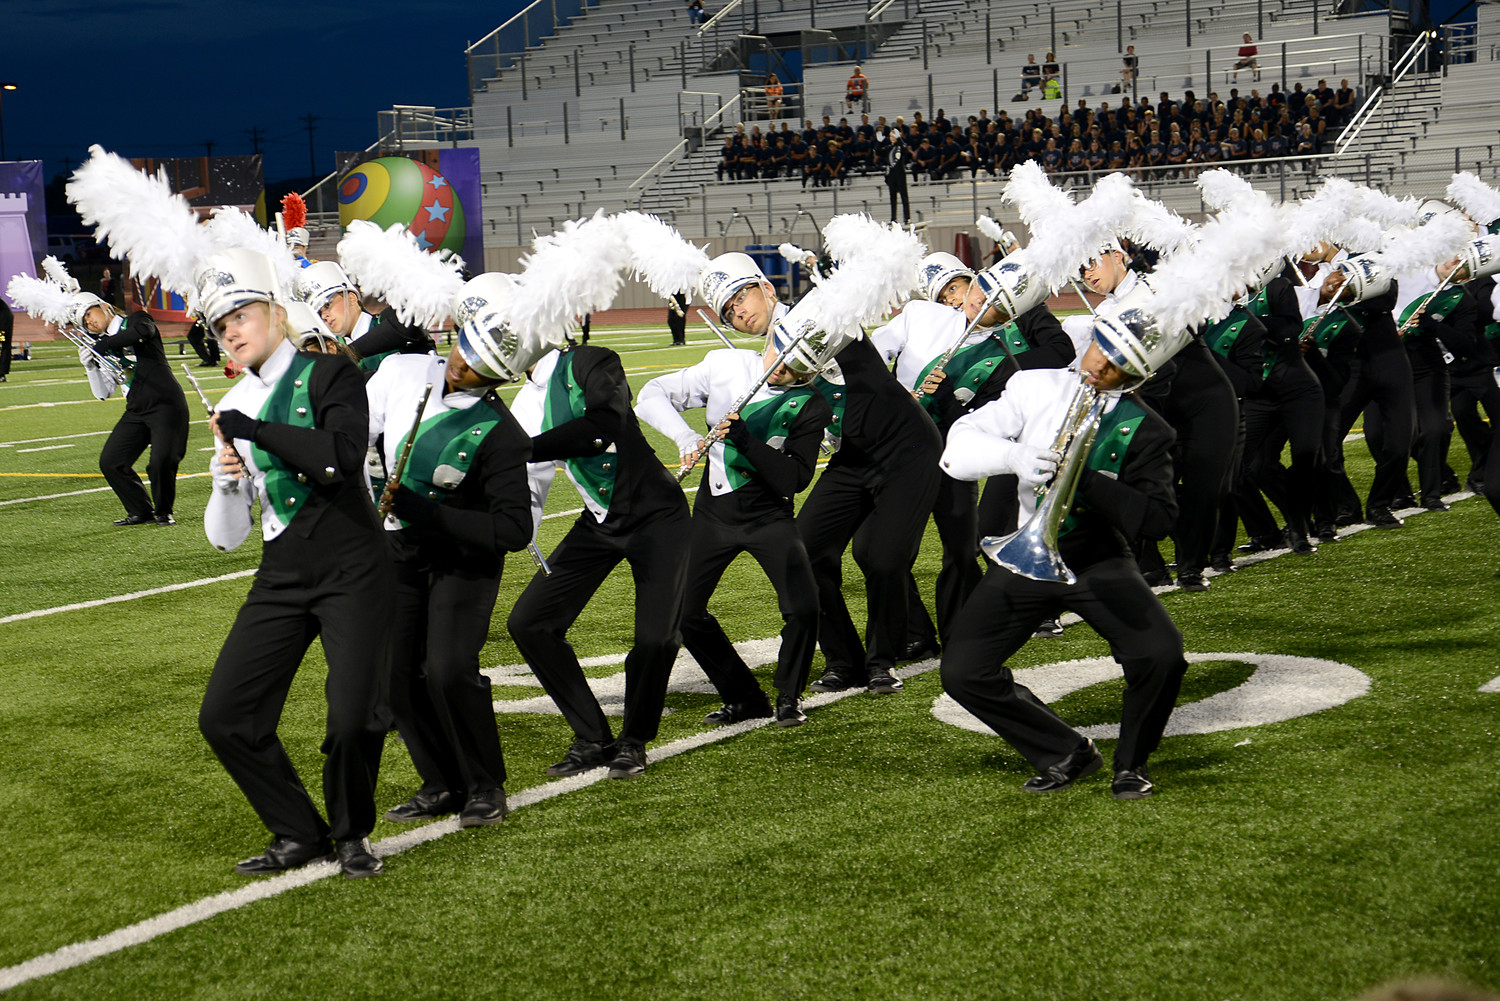 Leander ISD's annual Festival of Bands took place on Monday, Sept. 25, at Bible Stadium in Leander. The event featured all LISD high school marching bands and auxiliaries in exhibition marching performances as well as seated performances by LISD's middle schools.